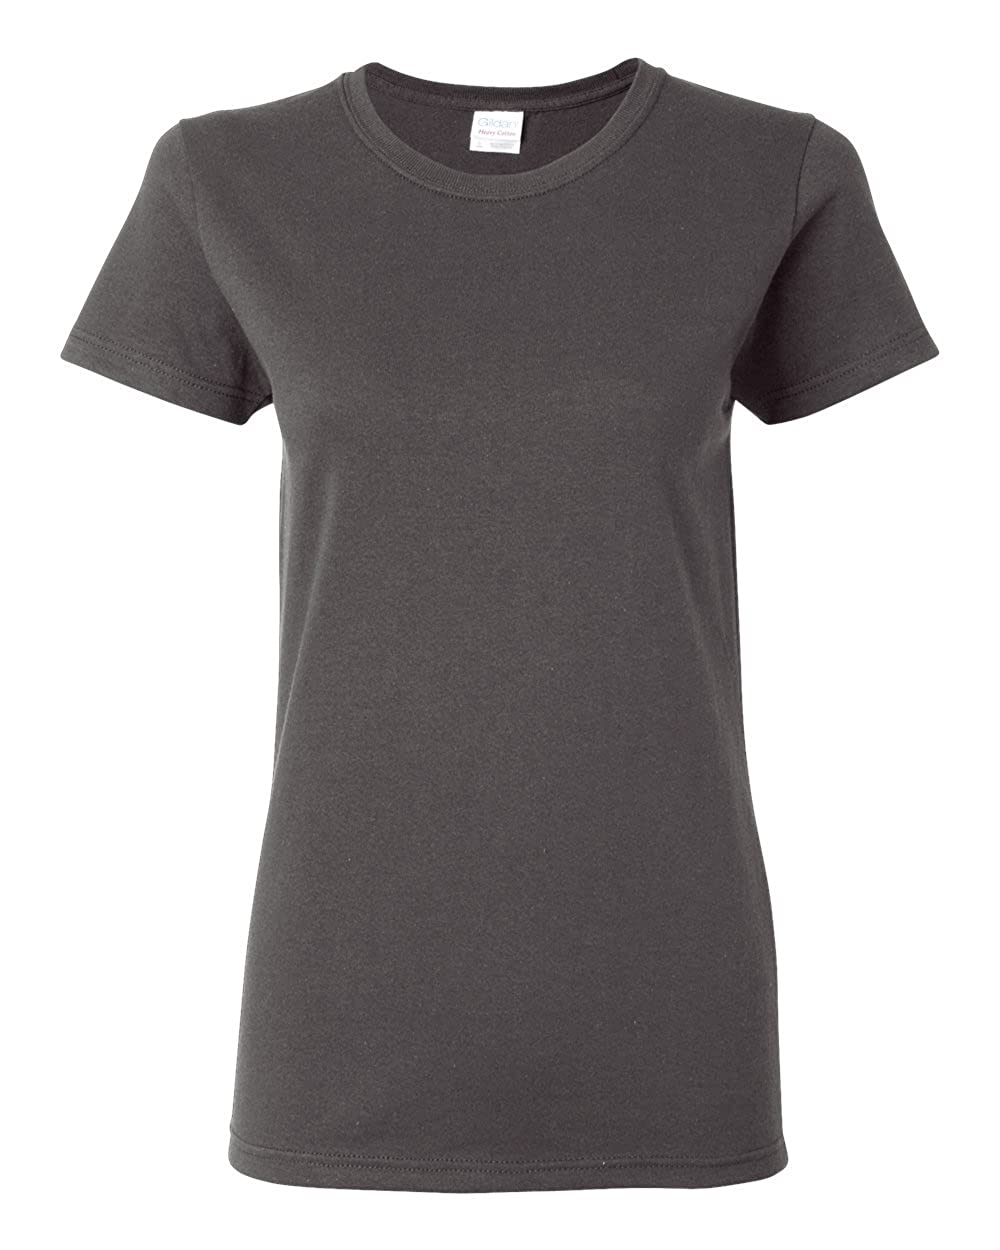 Charcoal Gildan Womens 5.3 oz. Heavy Cotton Missy Fit TShirt G500L (Pack of 12)